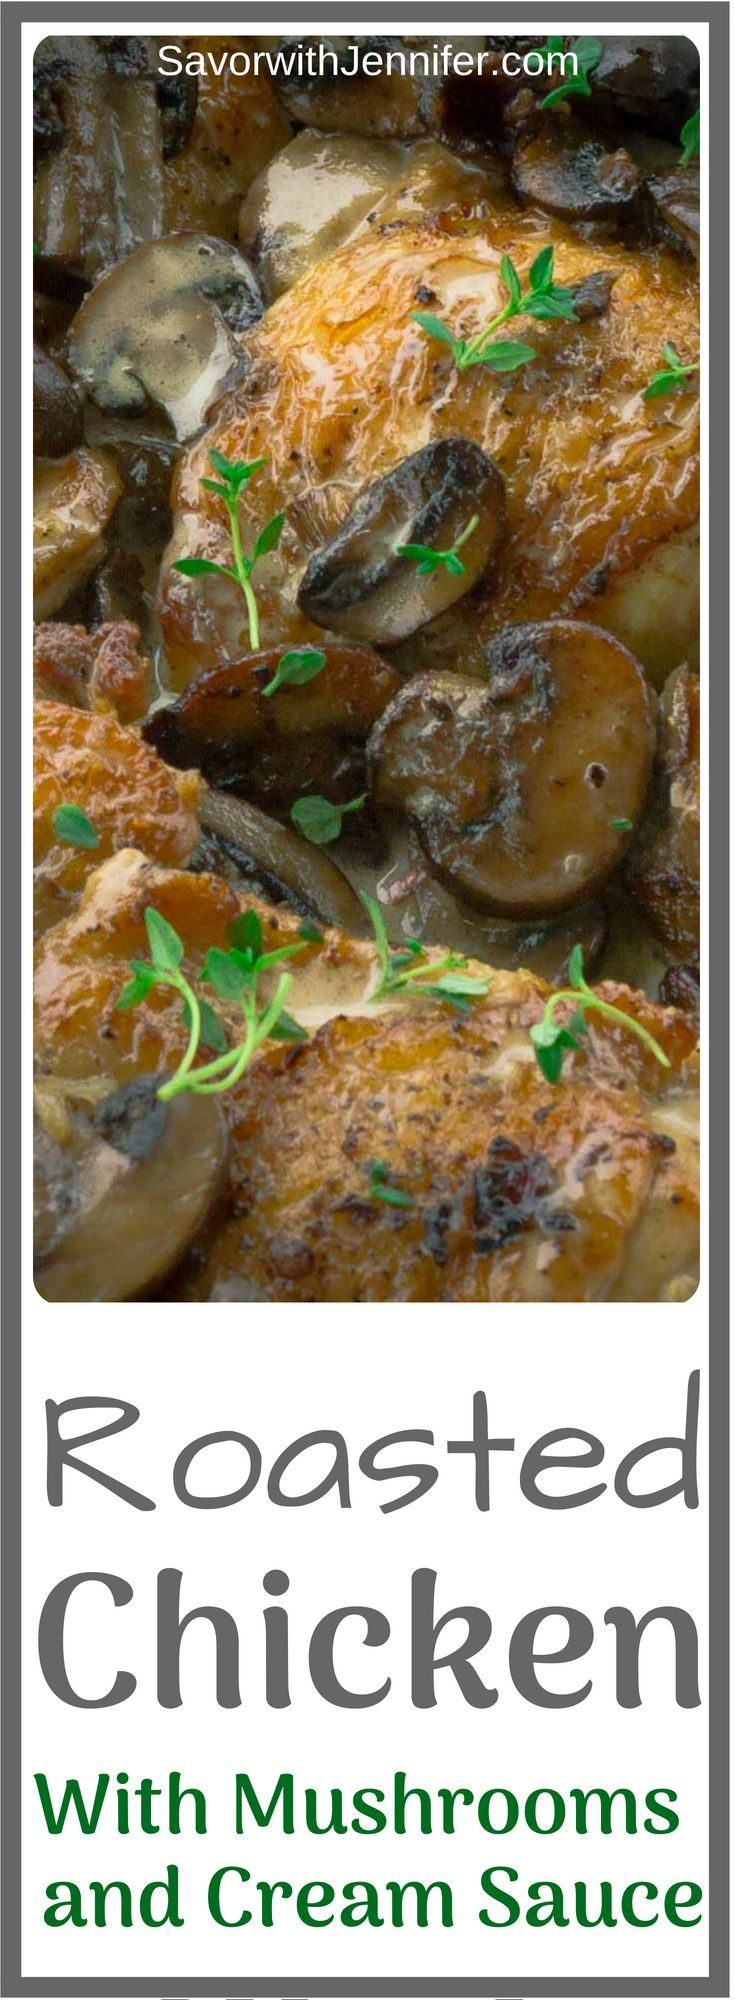 Crispy Roasted Chicken with Mushrooms and Cream Crispy Roasted Chicken with Mushrooms and Cream is a decadent meal flavored with caramelized, earthy mushrooms, white wine, thyme, garlic, and a cream sauce served around juicy, crispy-skinned chicken thighs.